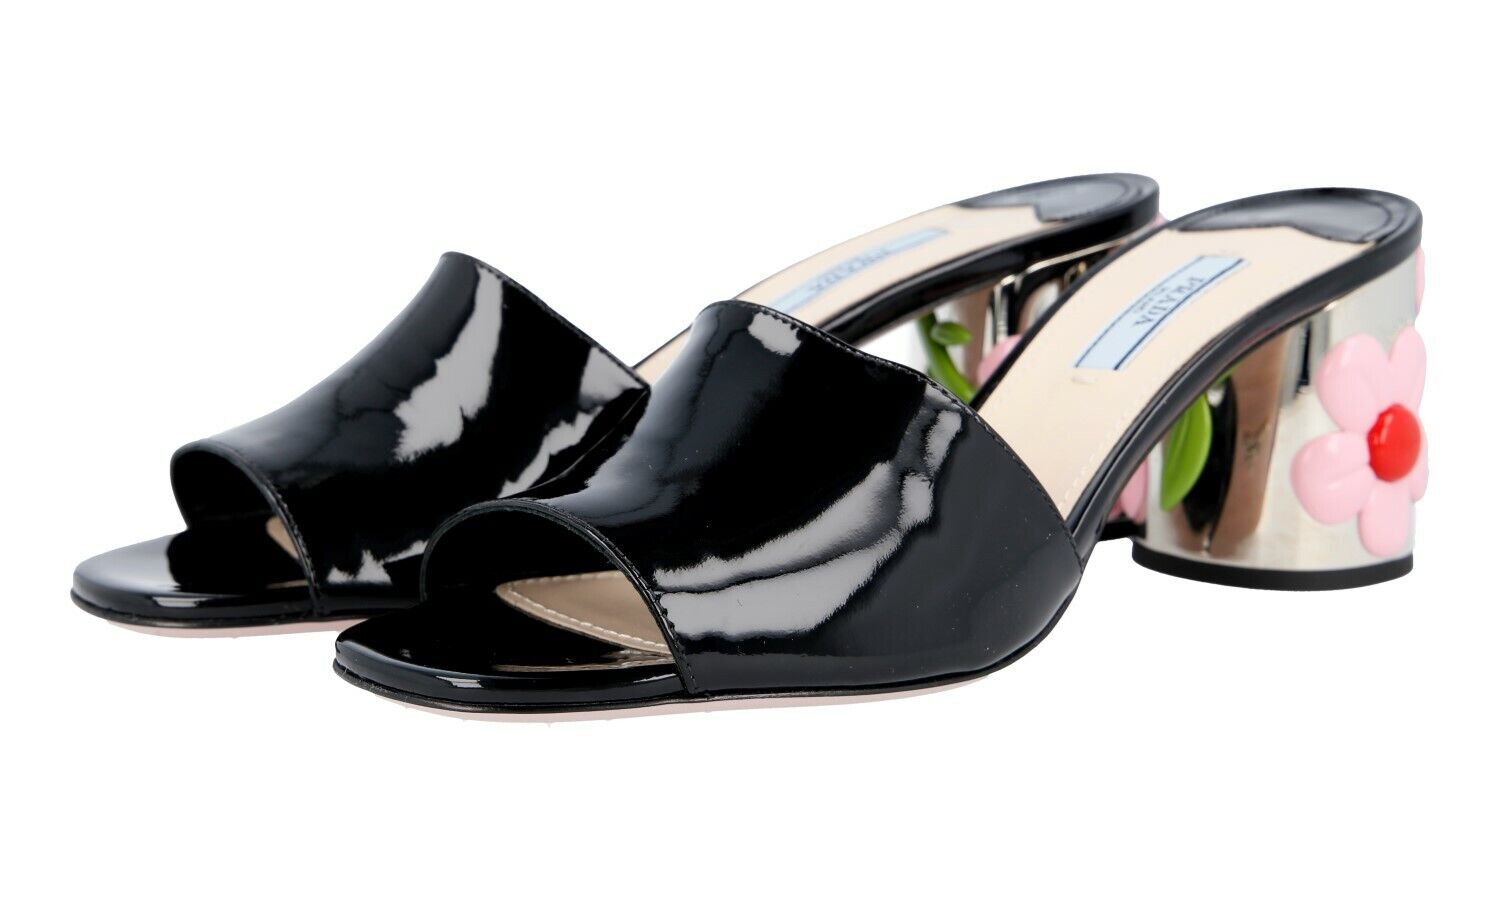 Luxurious prada sandal 1xx310 black new 39 39,5 uk 6